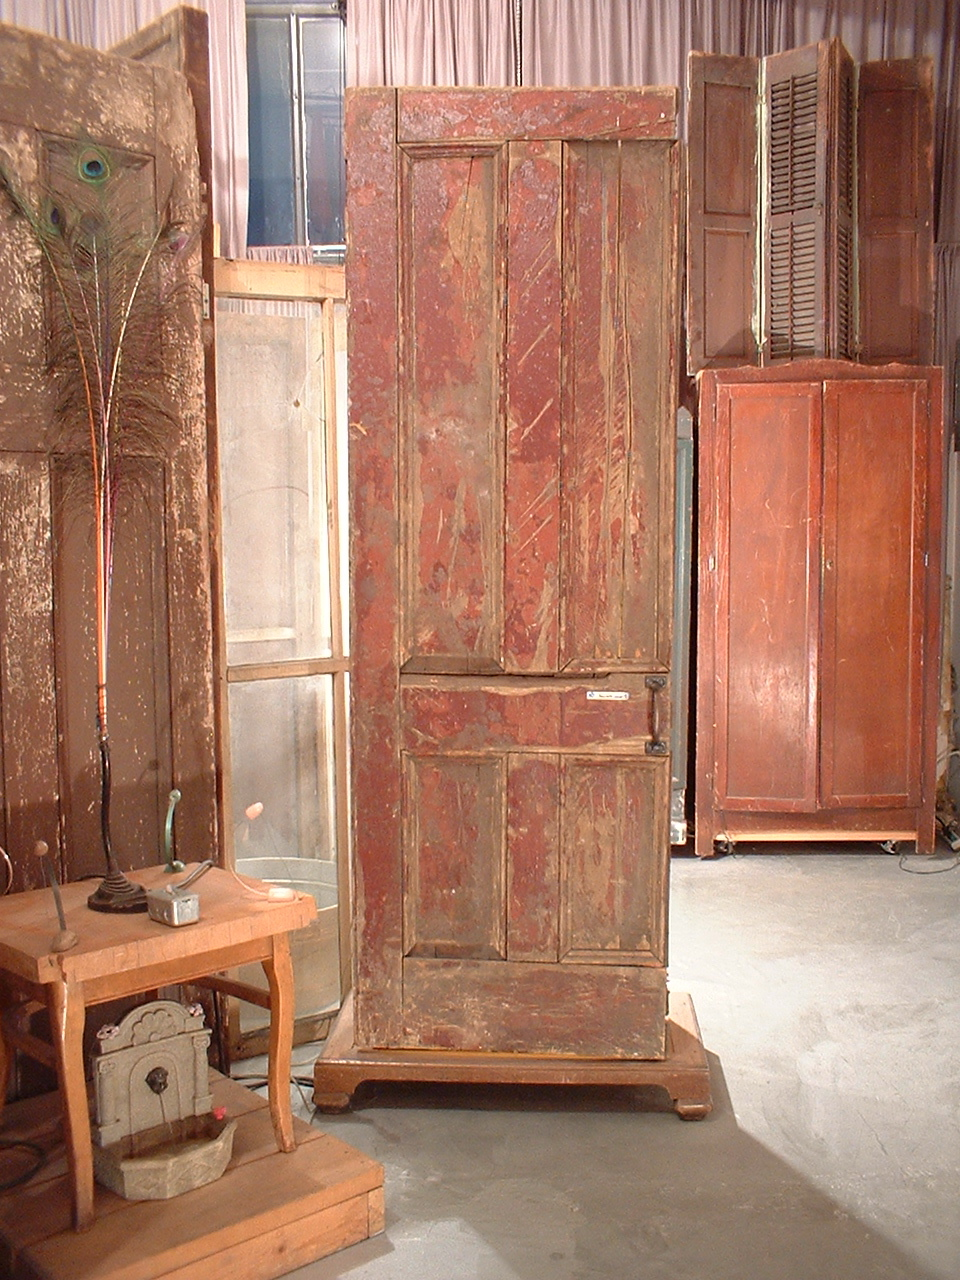 """[closed view] """"Smarty, Smarty, Smarty. Thought you had a party."""" 2001; doors, wood canvas, clay mercury vapor lamp, elect. components"""